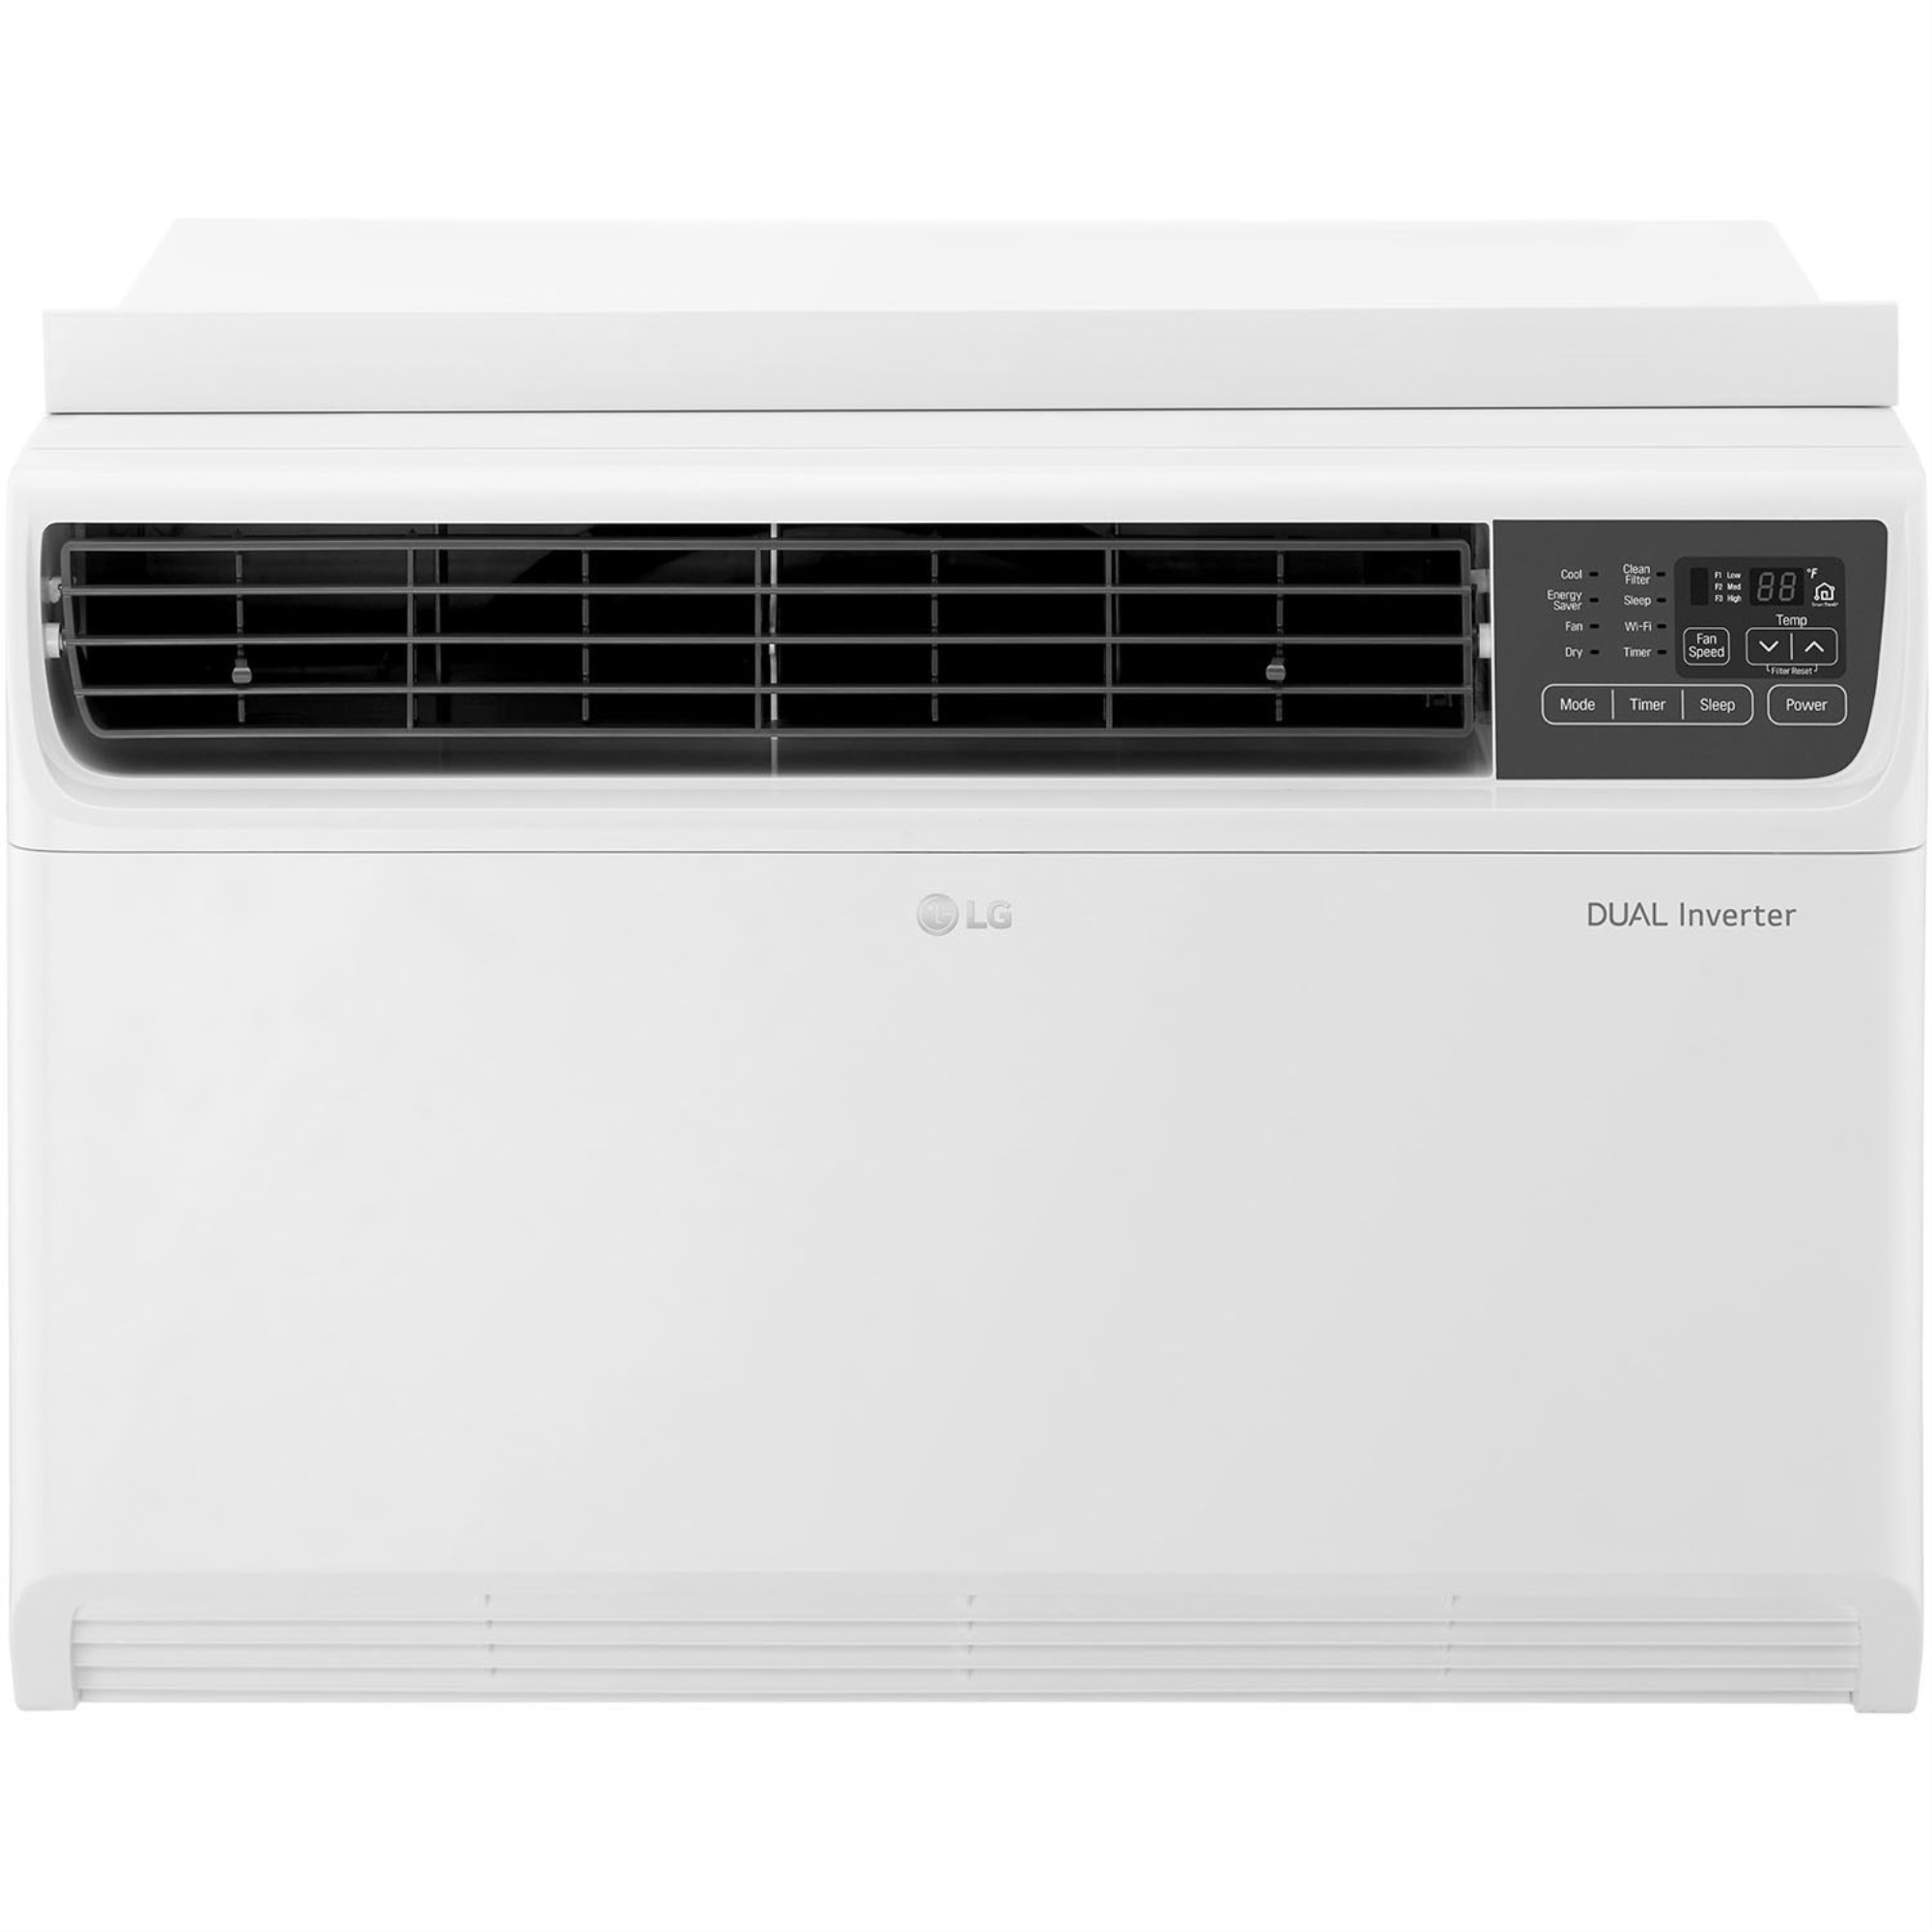 230V 18,000 BTU Dual Inverter Window Air Conditioner with Wi